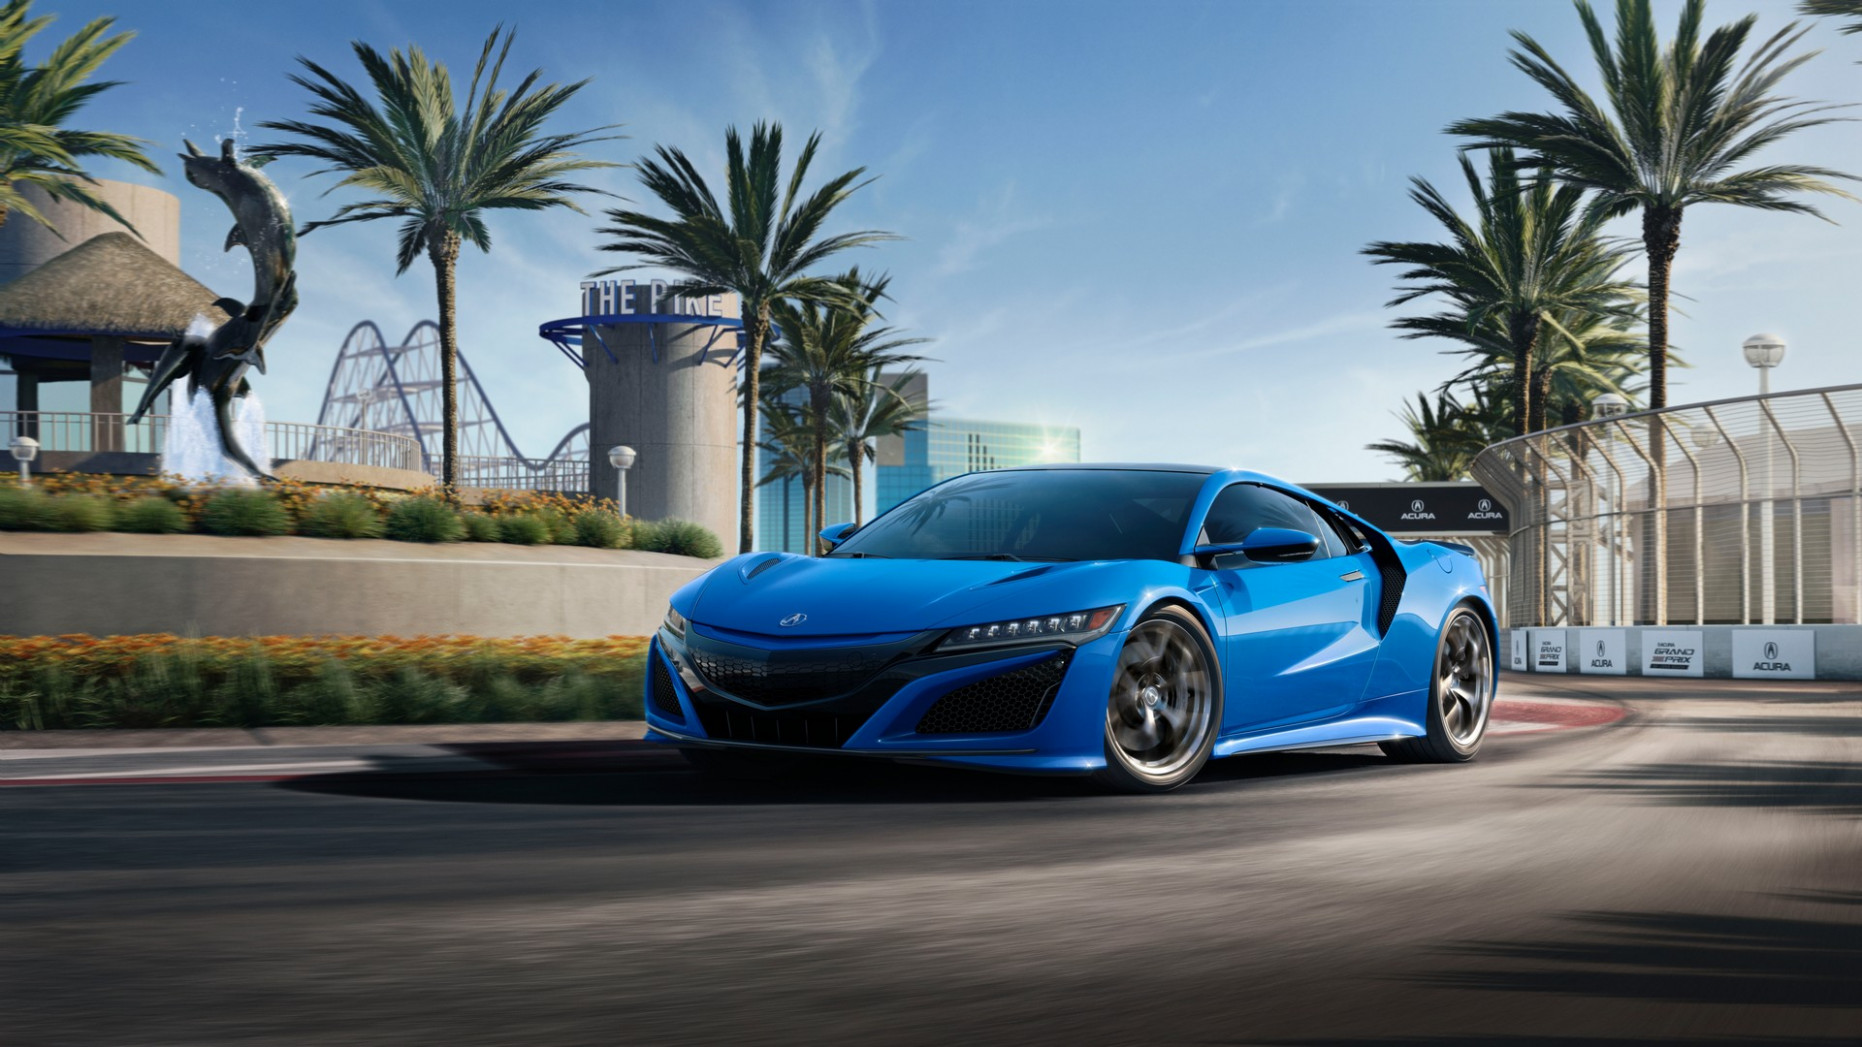 New Model and Performance 2022 Acura NSX